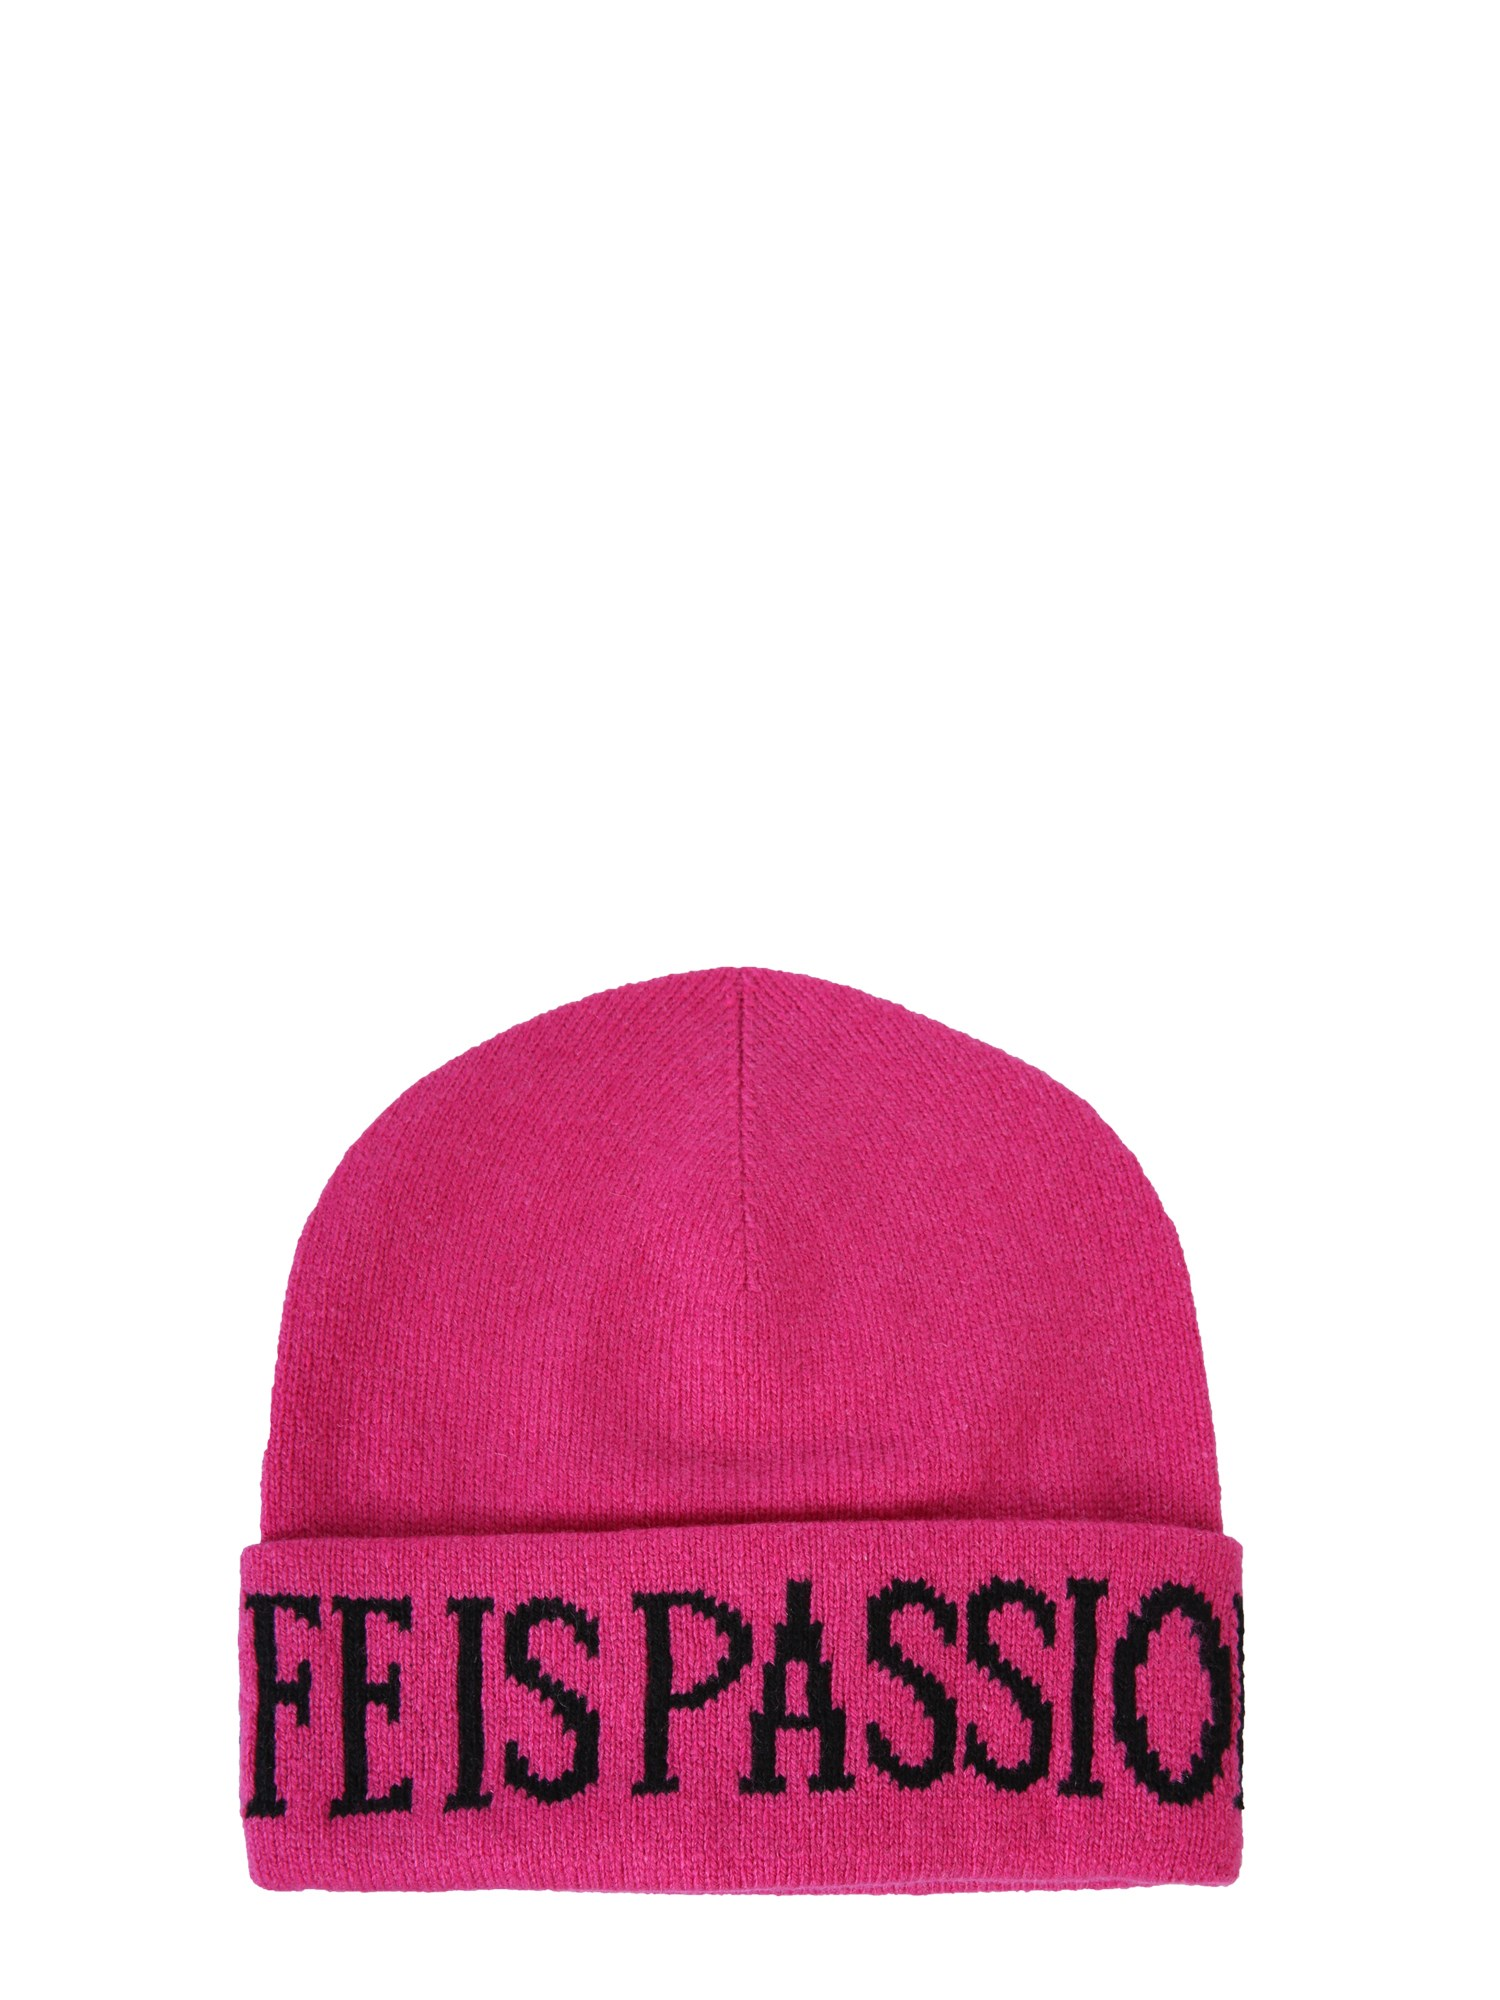 "Alberta Ferretti ""LIFE IS PASSION"" HAT"